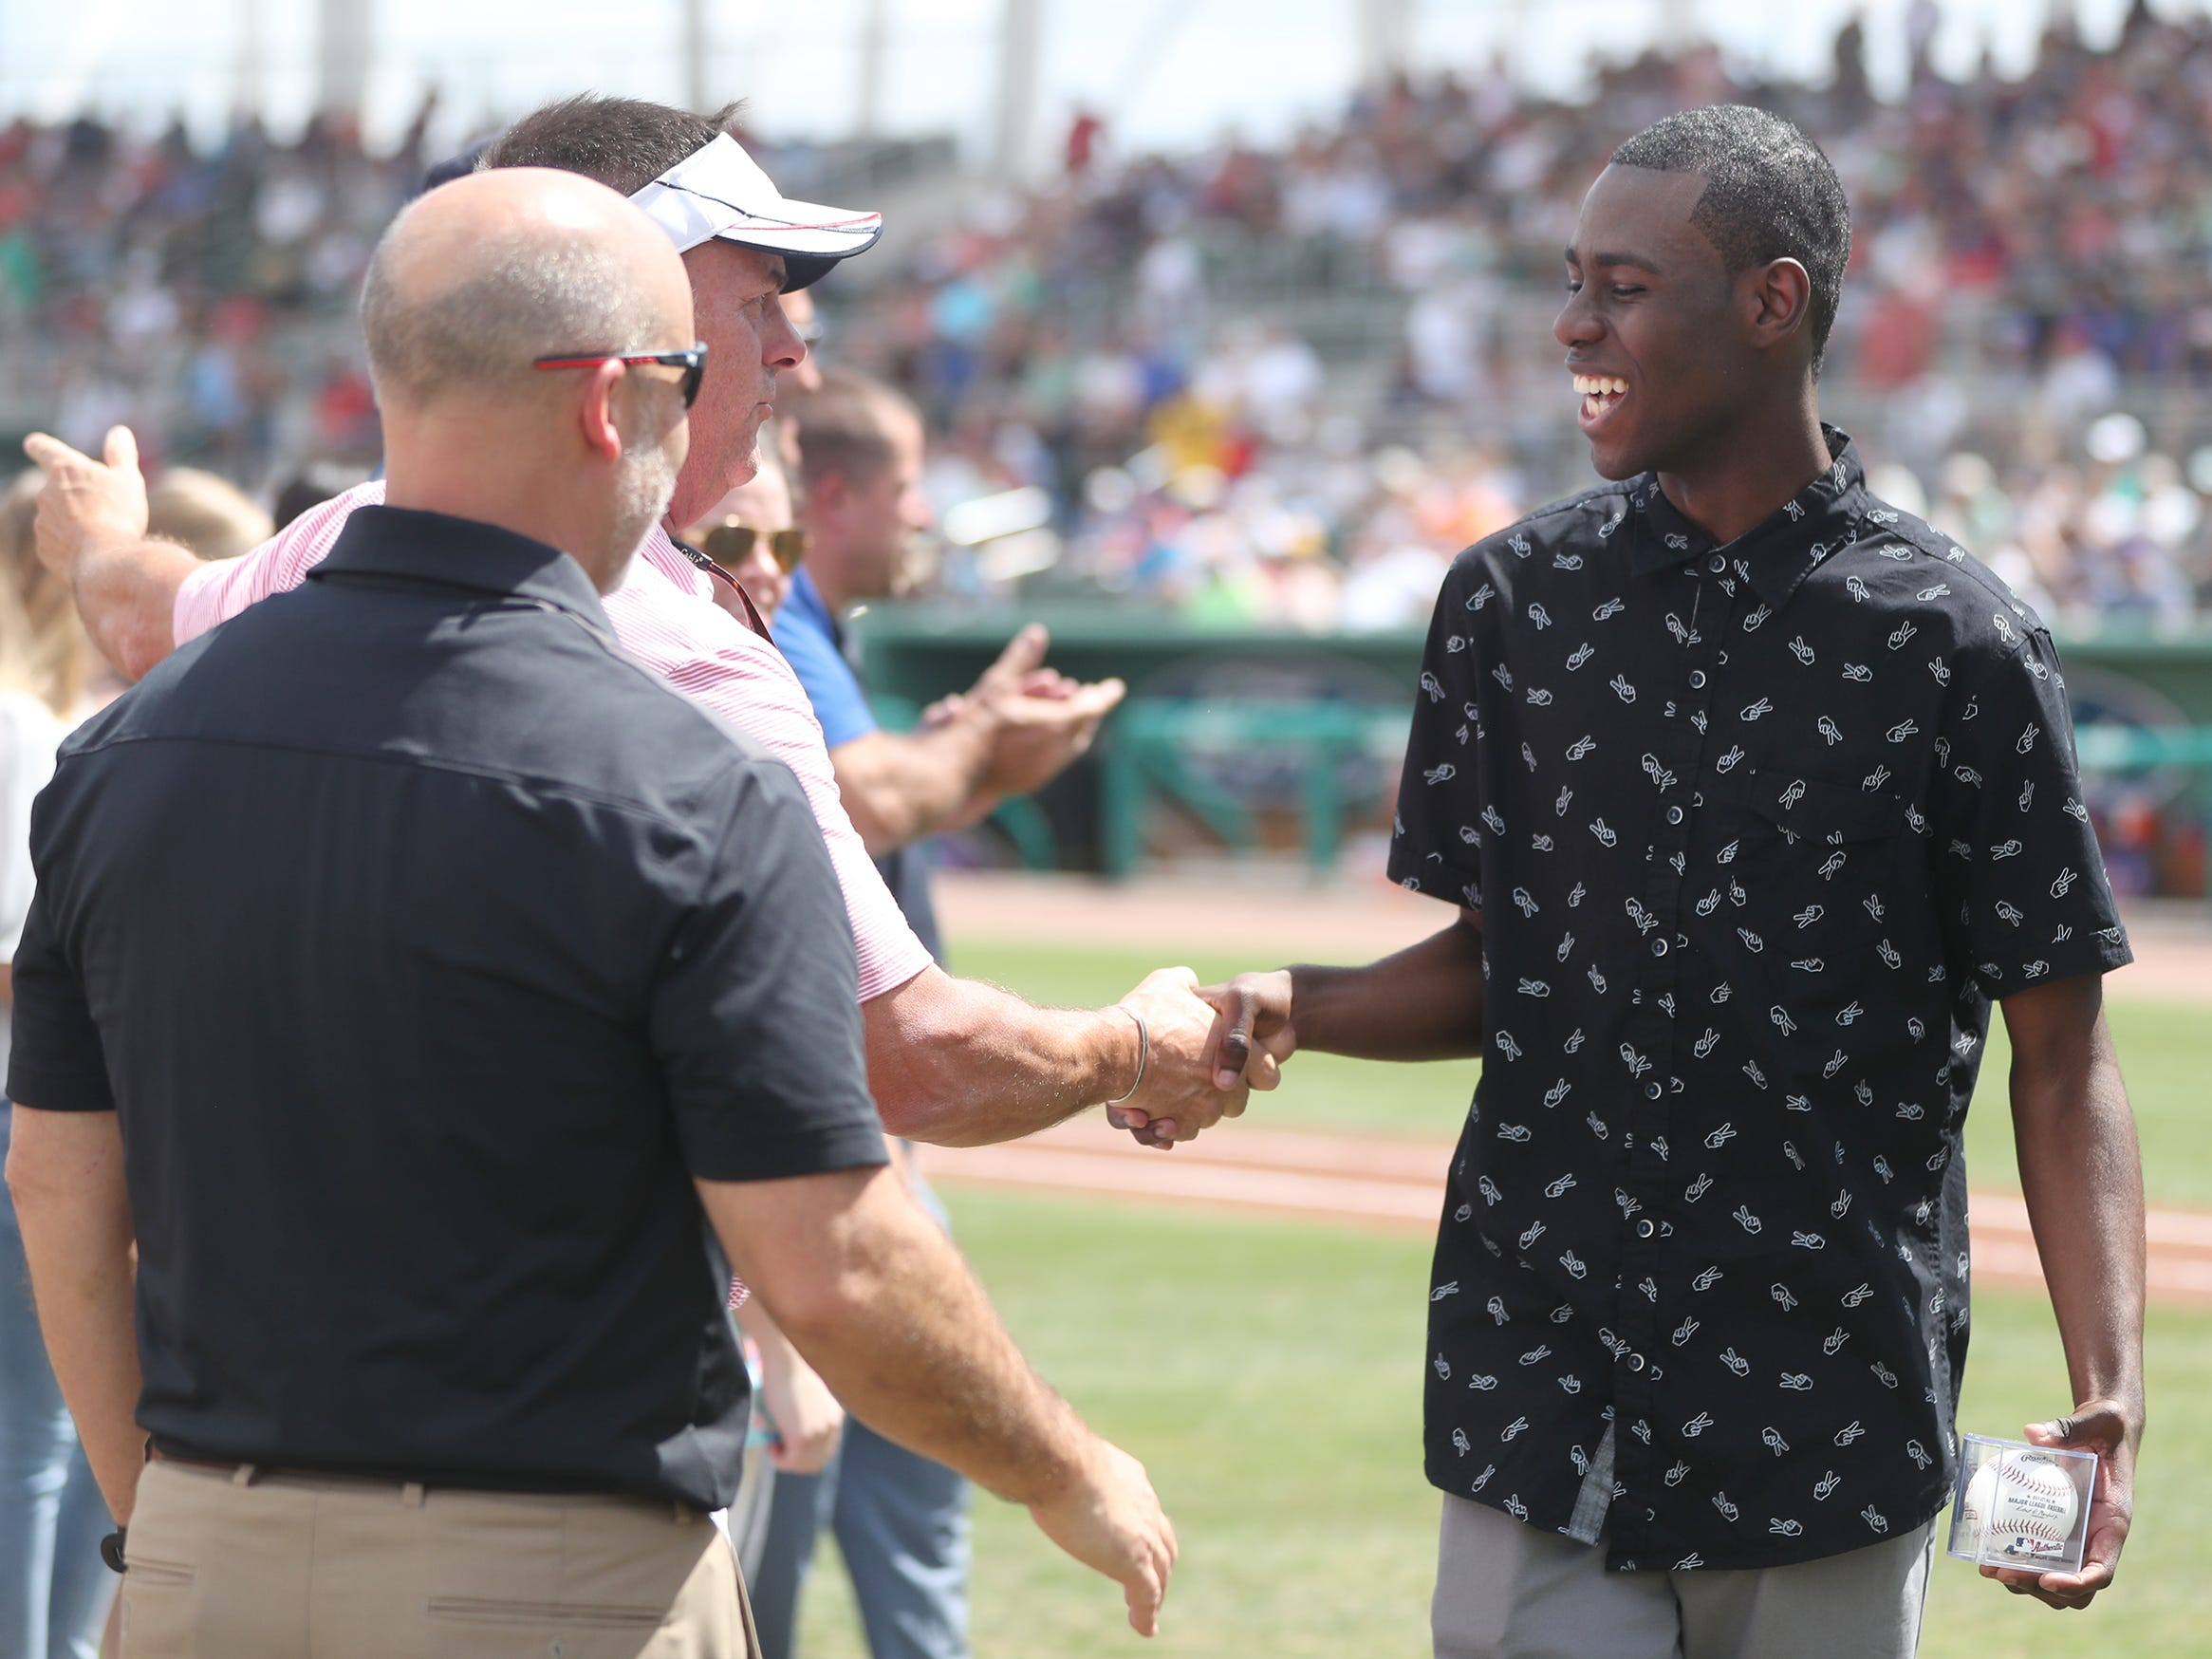 Riverdale High School's Natwayn Altema was one of 13 Lee County public high school seniors that received a $5,000 scholarship from the Boston Red Sox Foundation on Saturday before the team's game against the New York Mets at JetBlue Park in Fort Myers. The students' academic achievements and community service efforts were the basis for the honor.